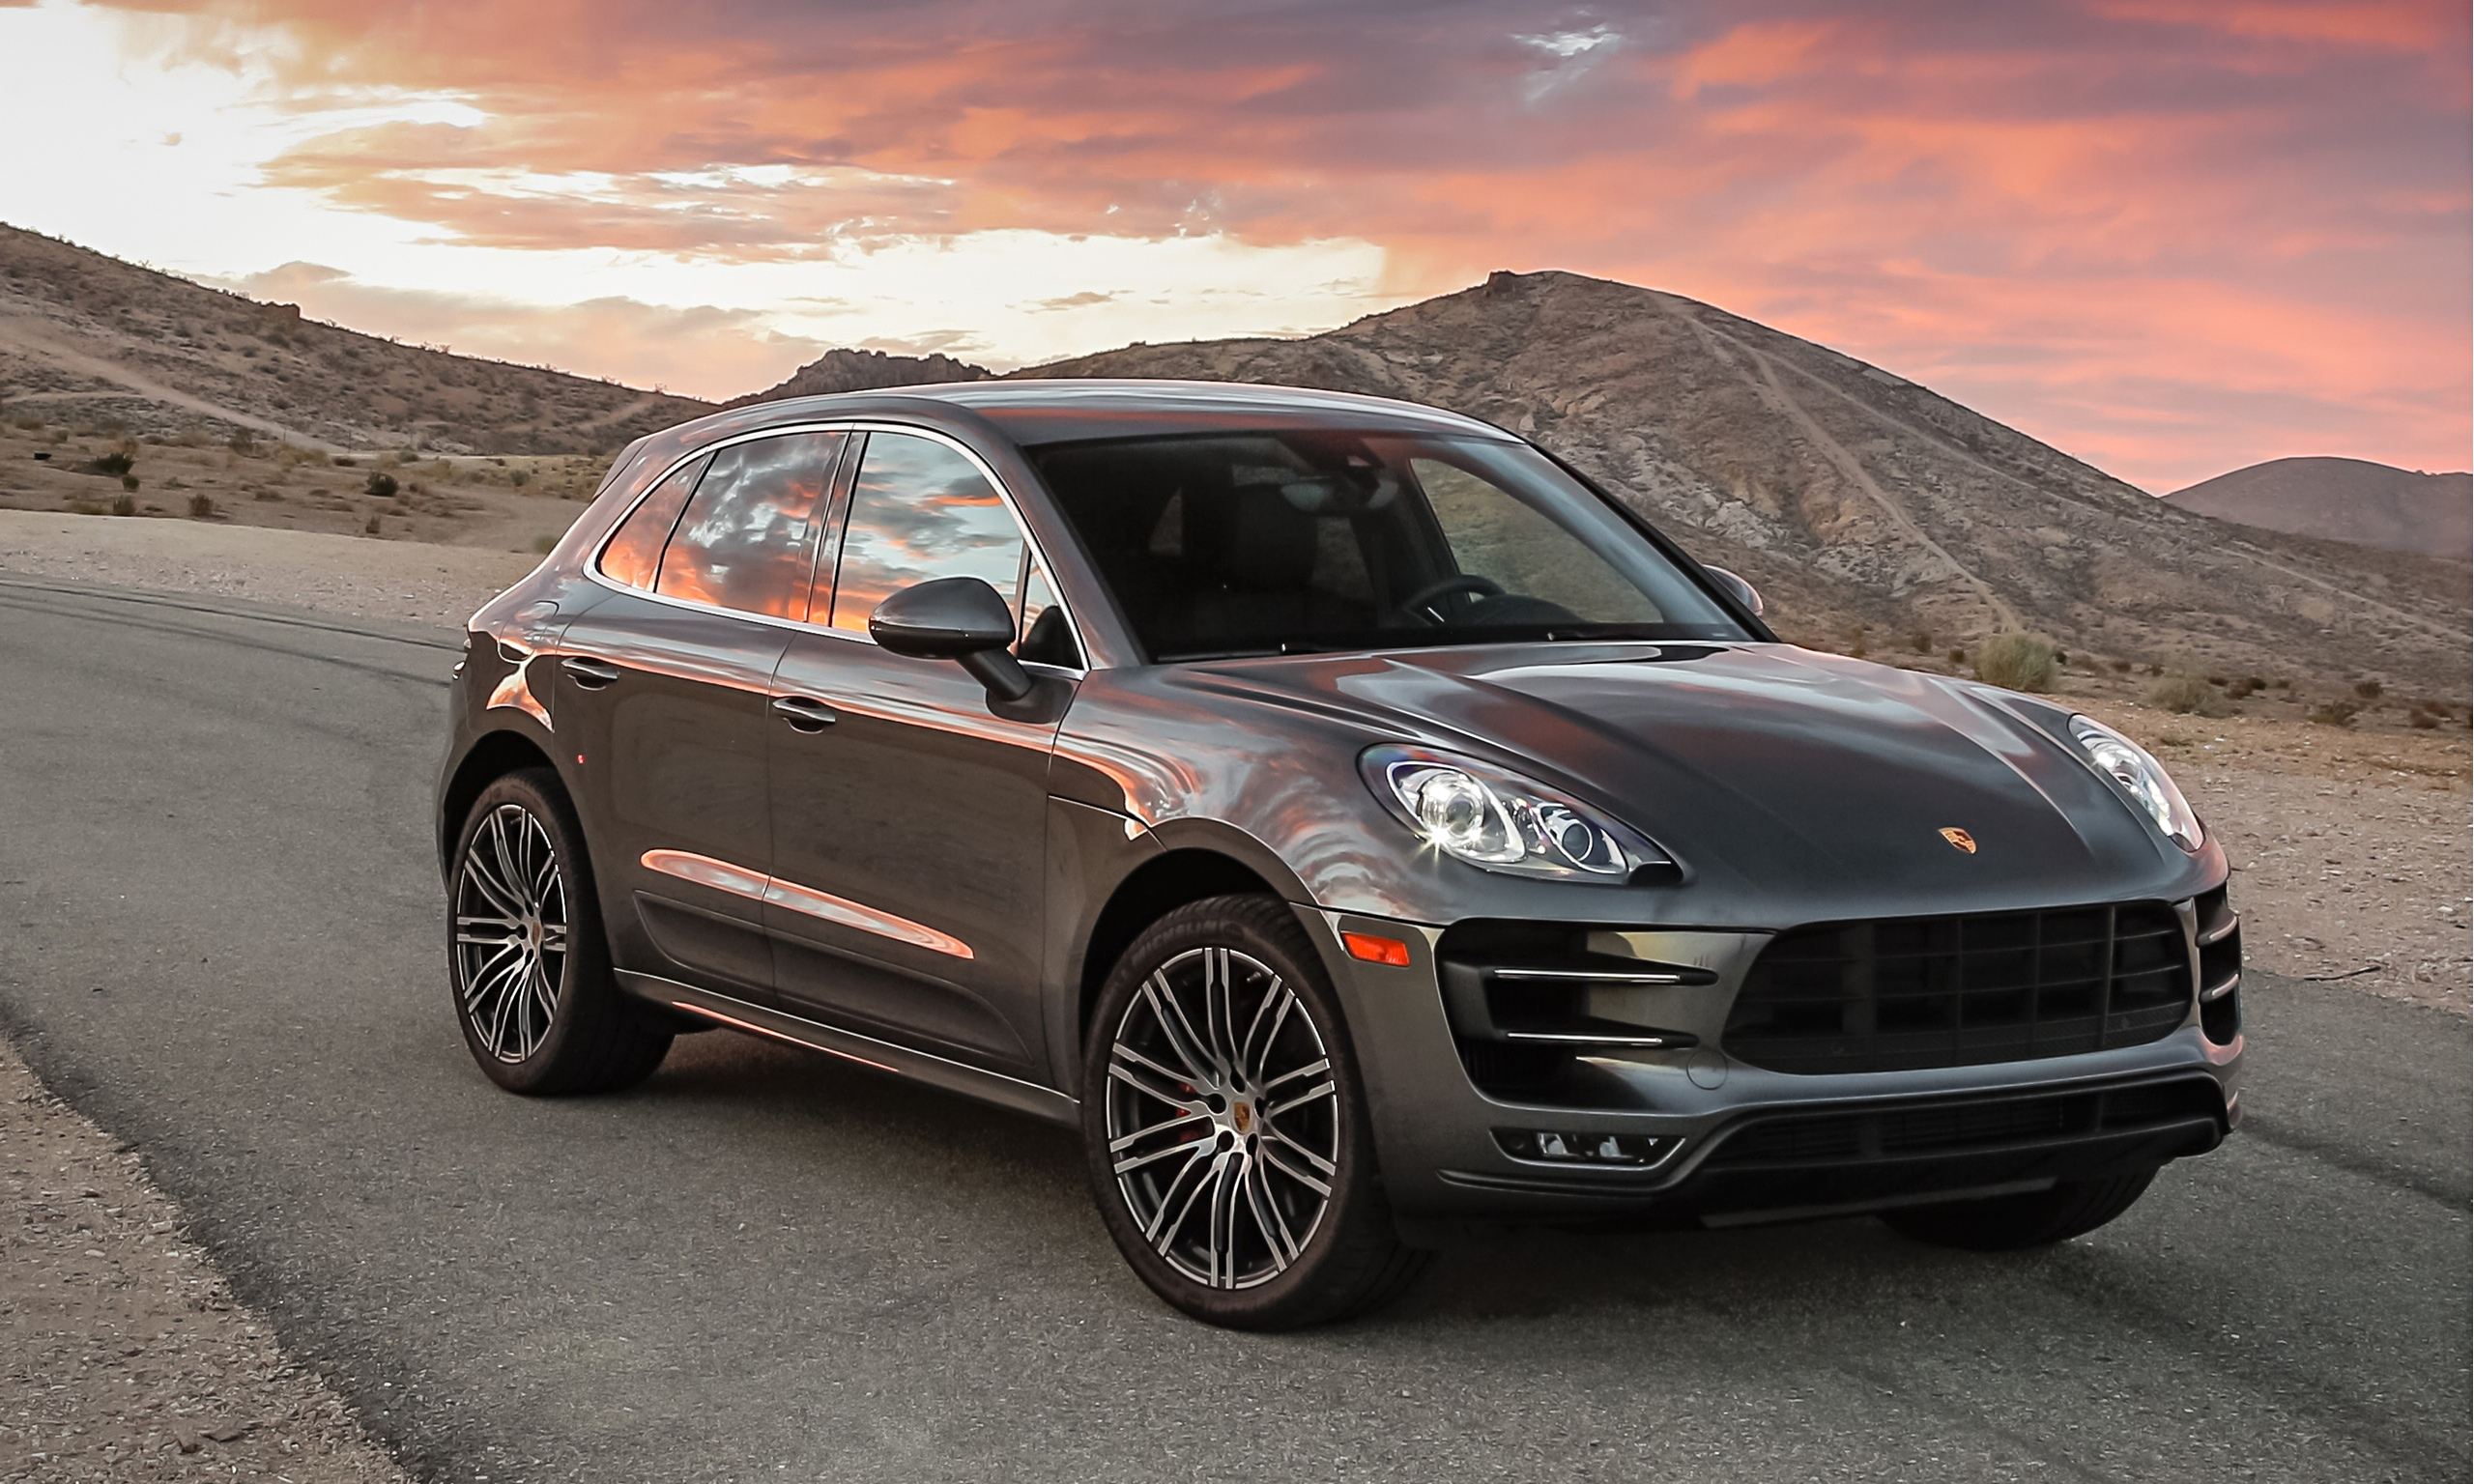 porsche macan car review martin love technology the guardian